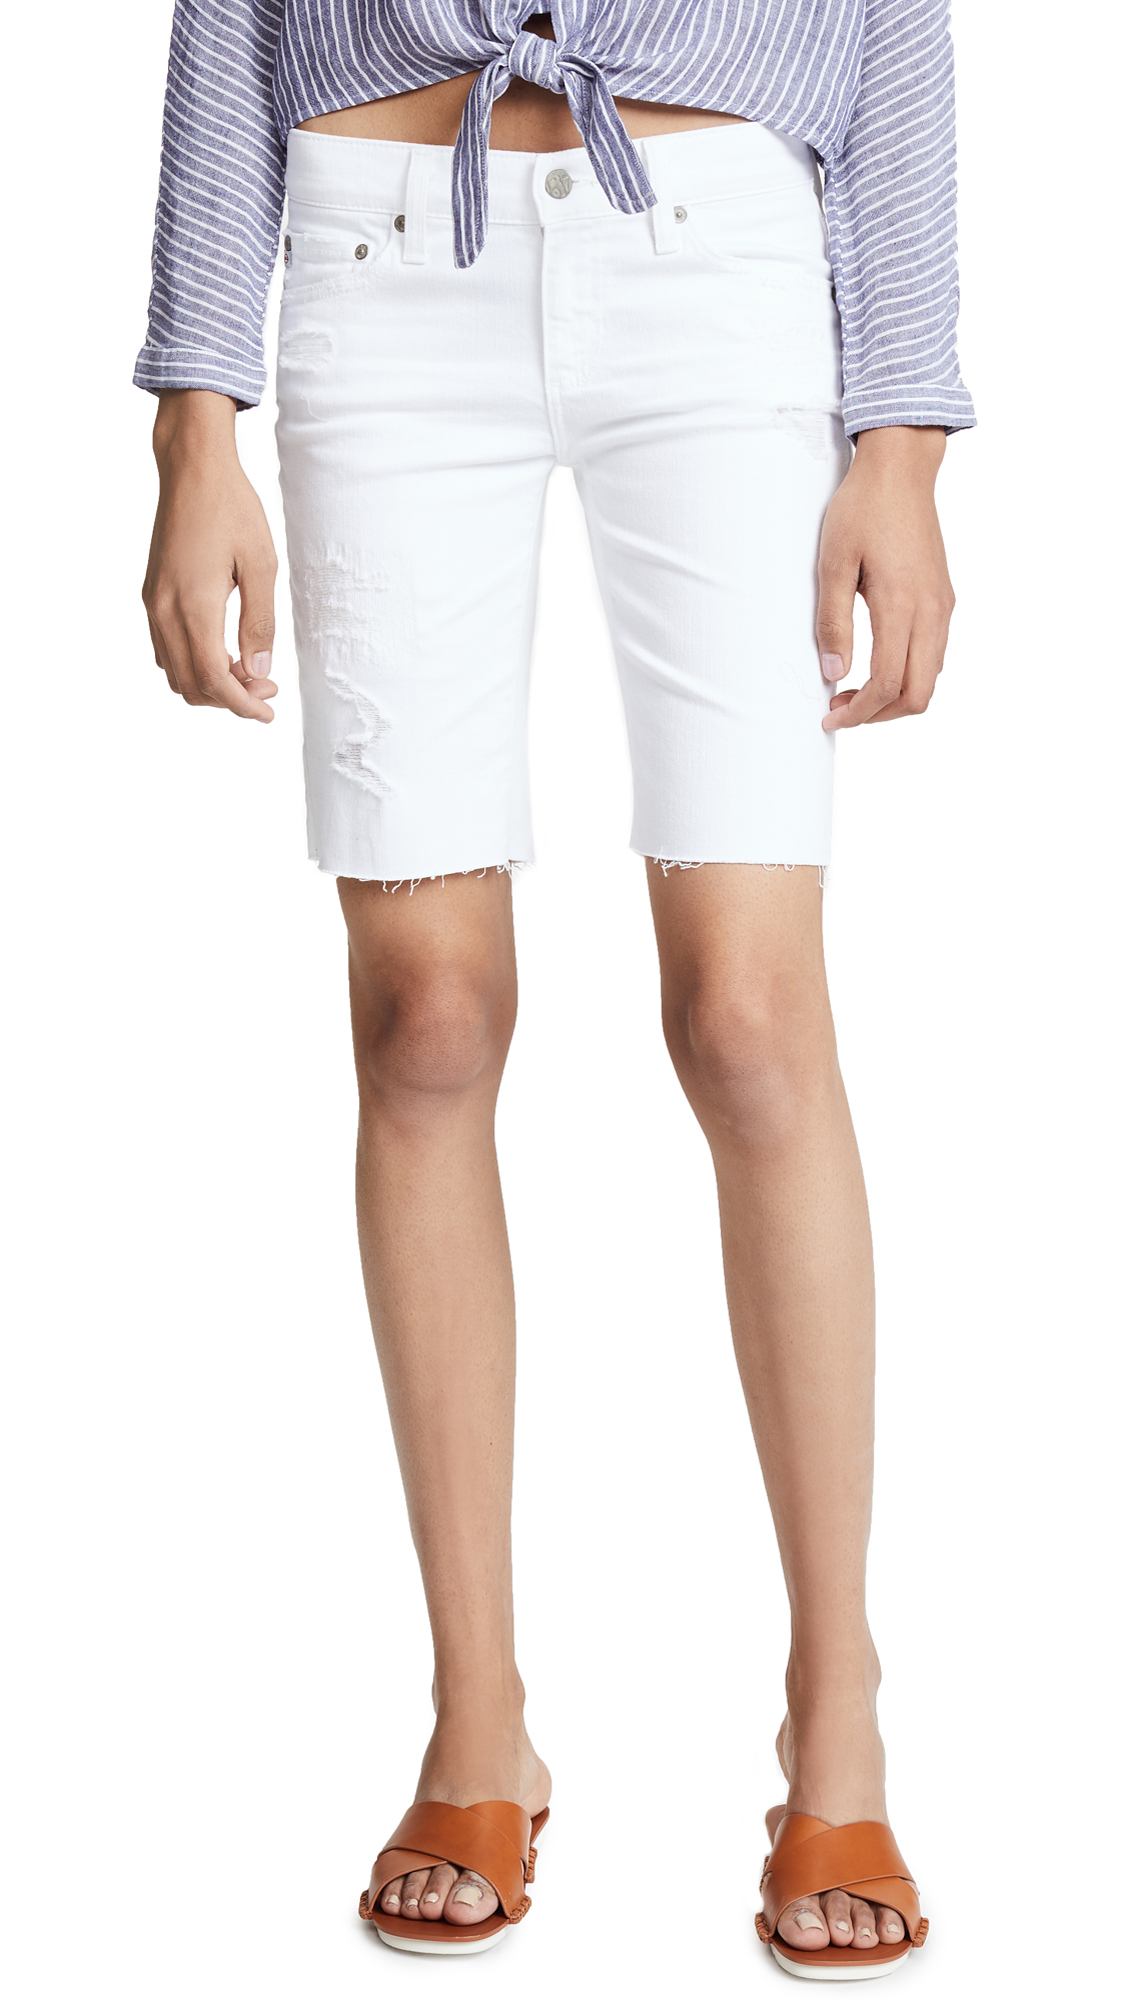 AG The Nikki Shorts In 1 Year White Mended